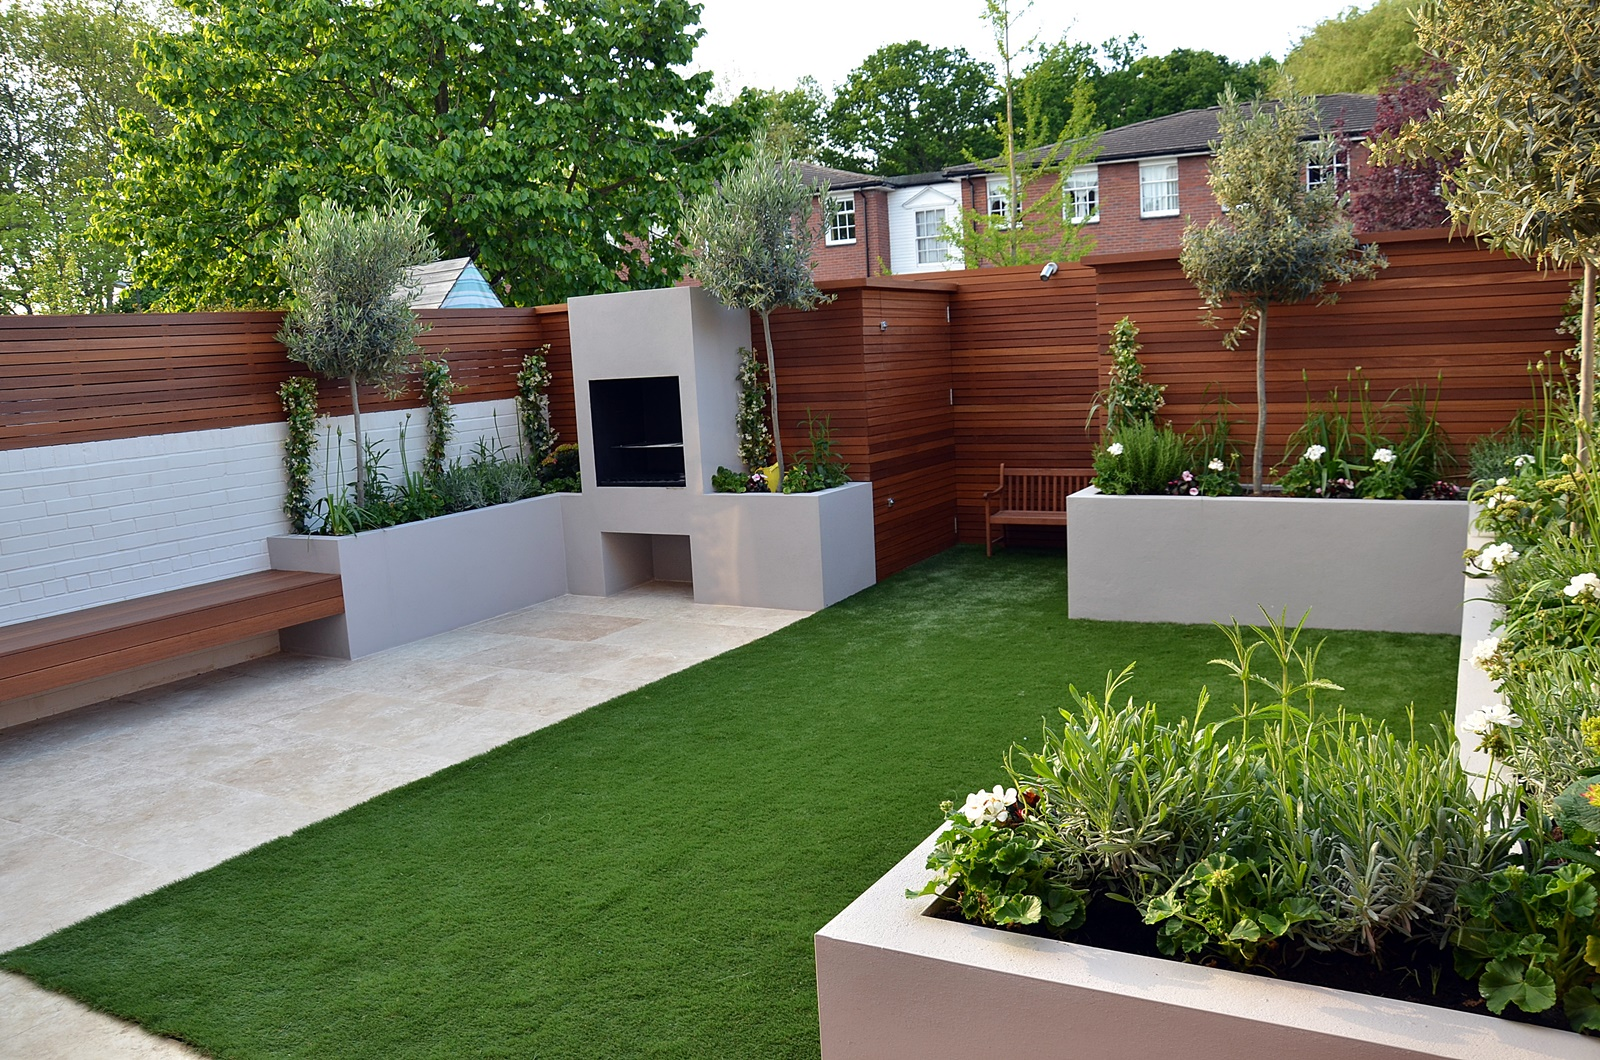 modern garden design fulham chelsea clapham battersea balham dulwich london london garden blog. Black Bedroom Furniture Sets. Home Design Ideas